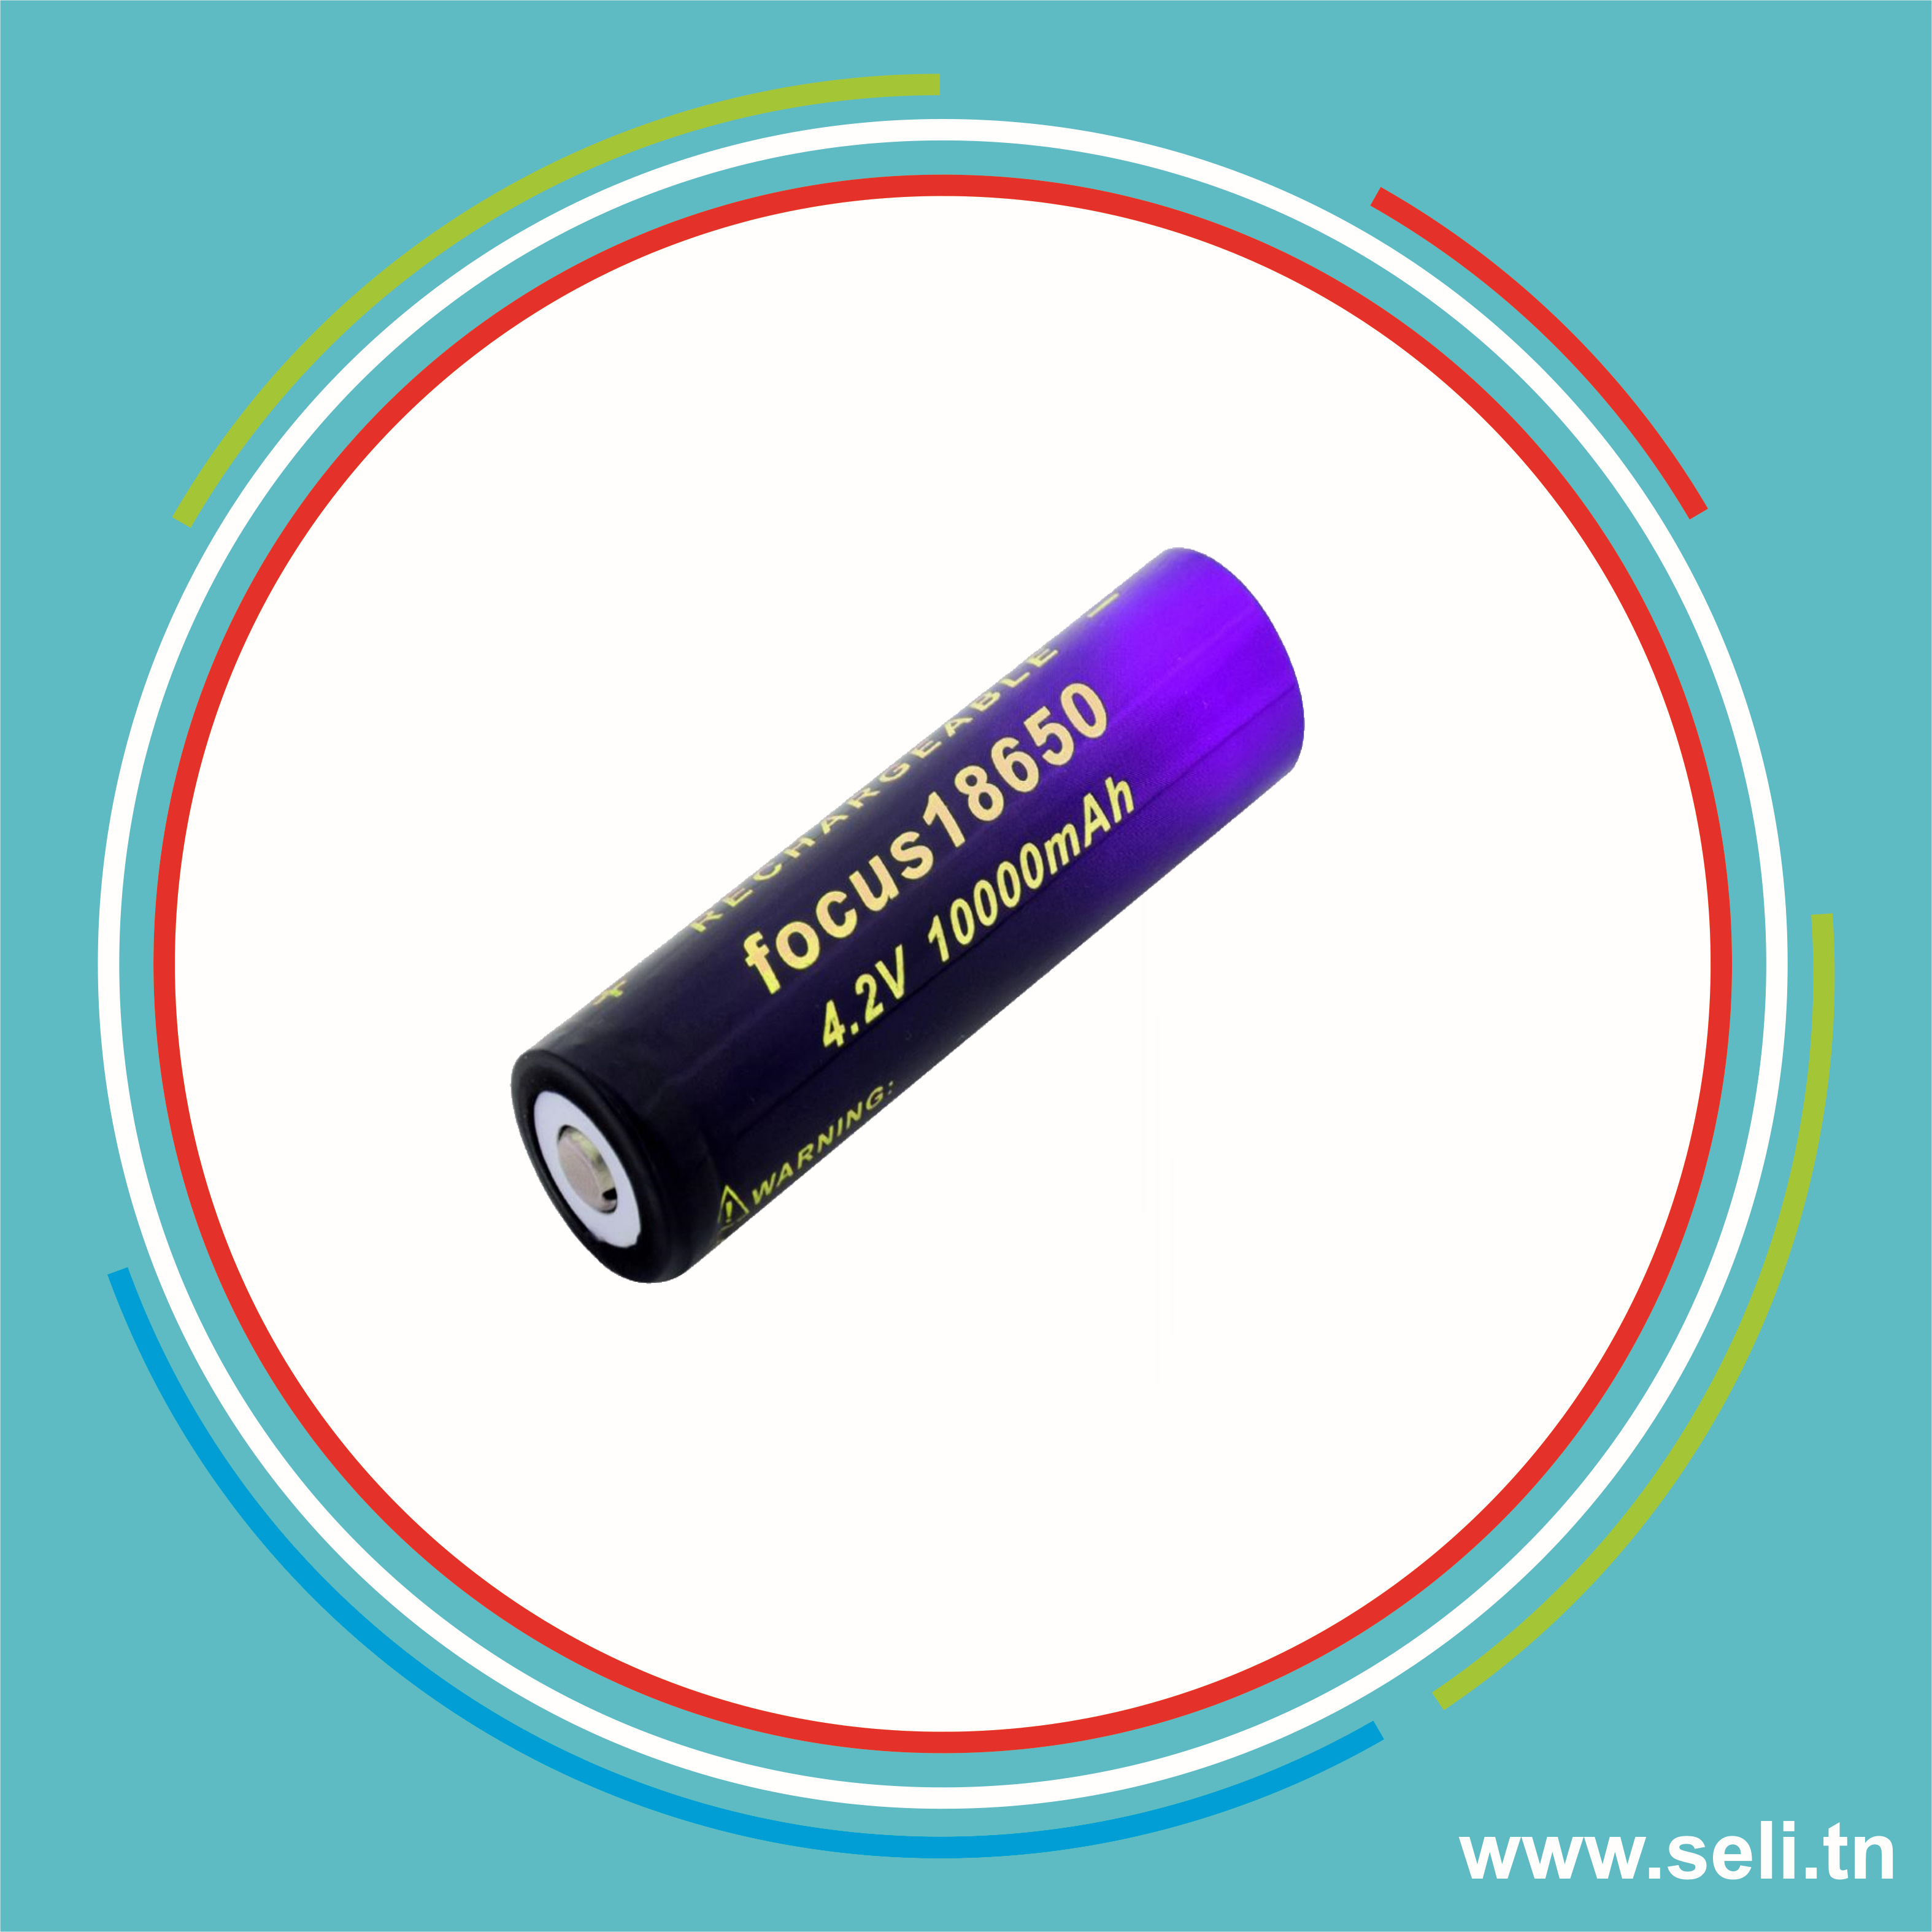 18650 PILE LI-ION RECHARGEABLE 2200MAH 3.7V.Arduino tunisie